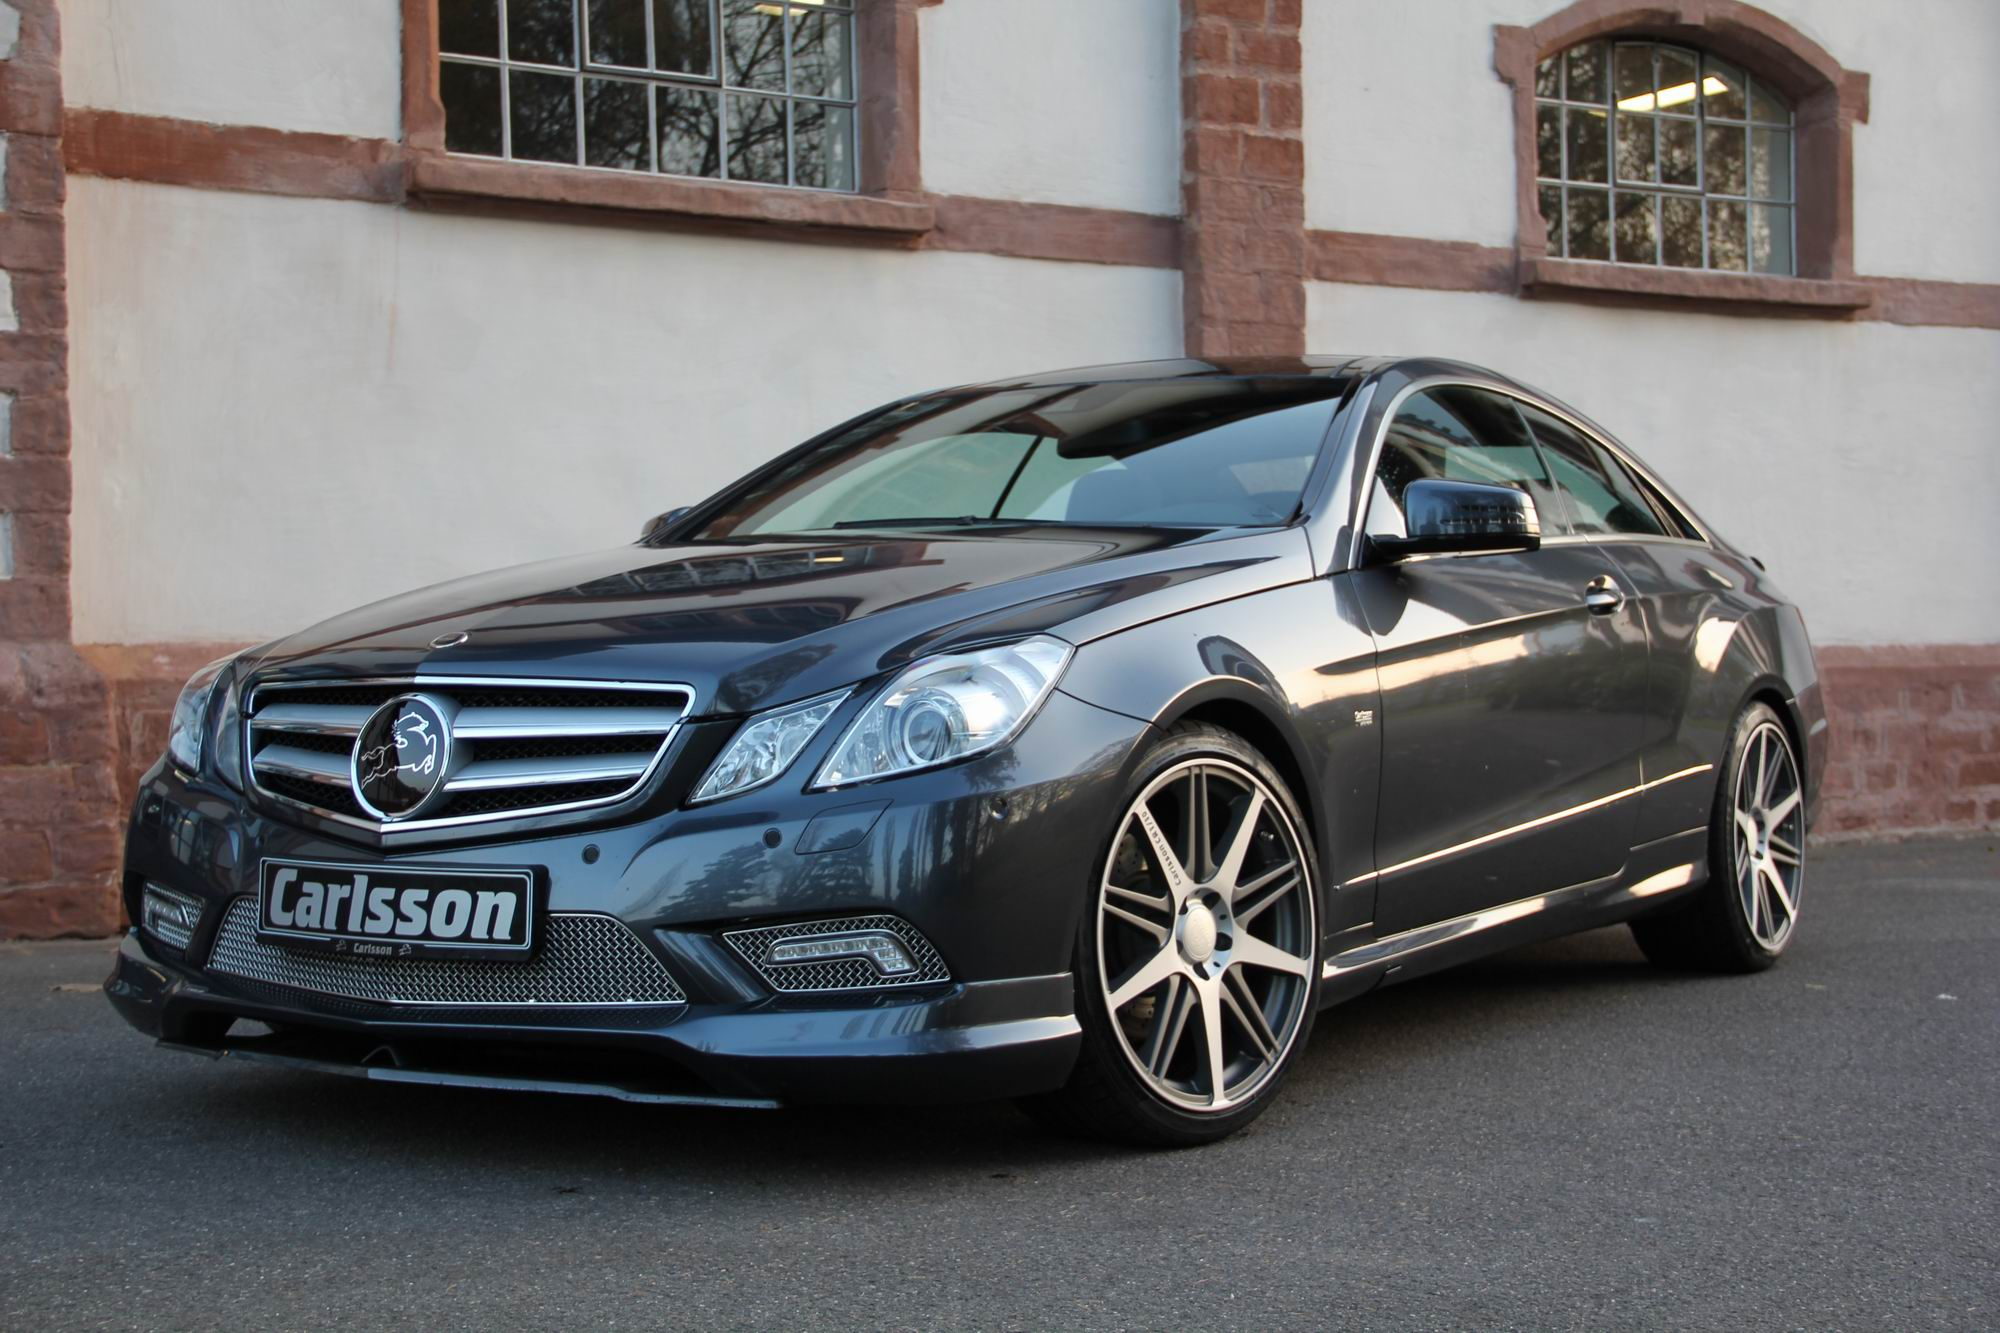 Carlsson-E-Coupe-C207-grey-front-c-Carlsson.jpg